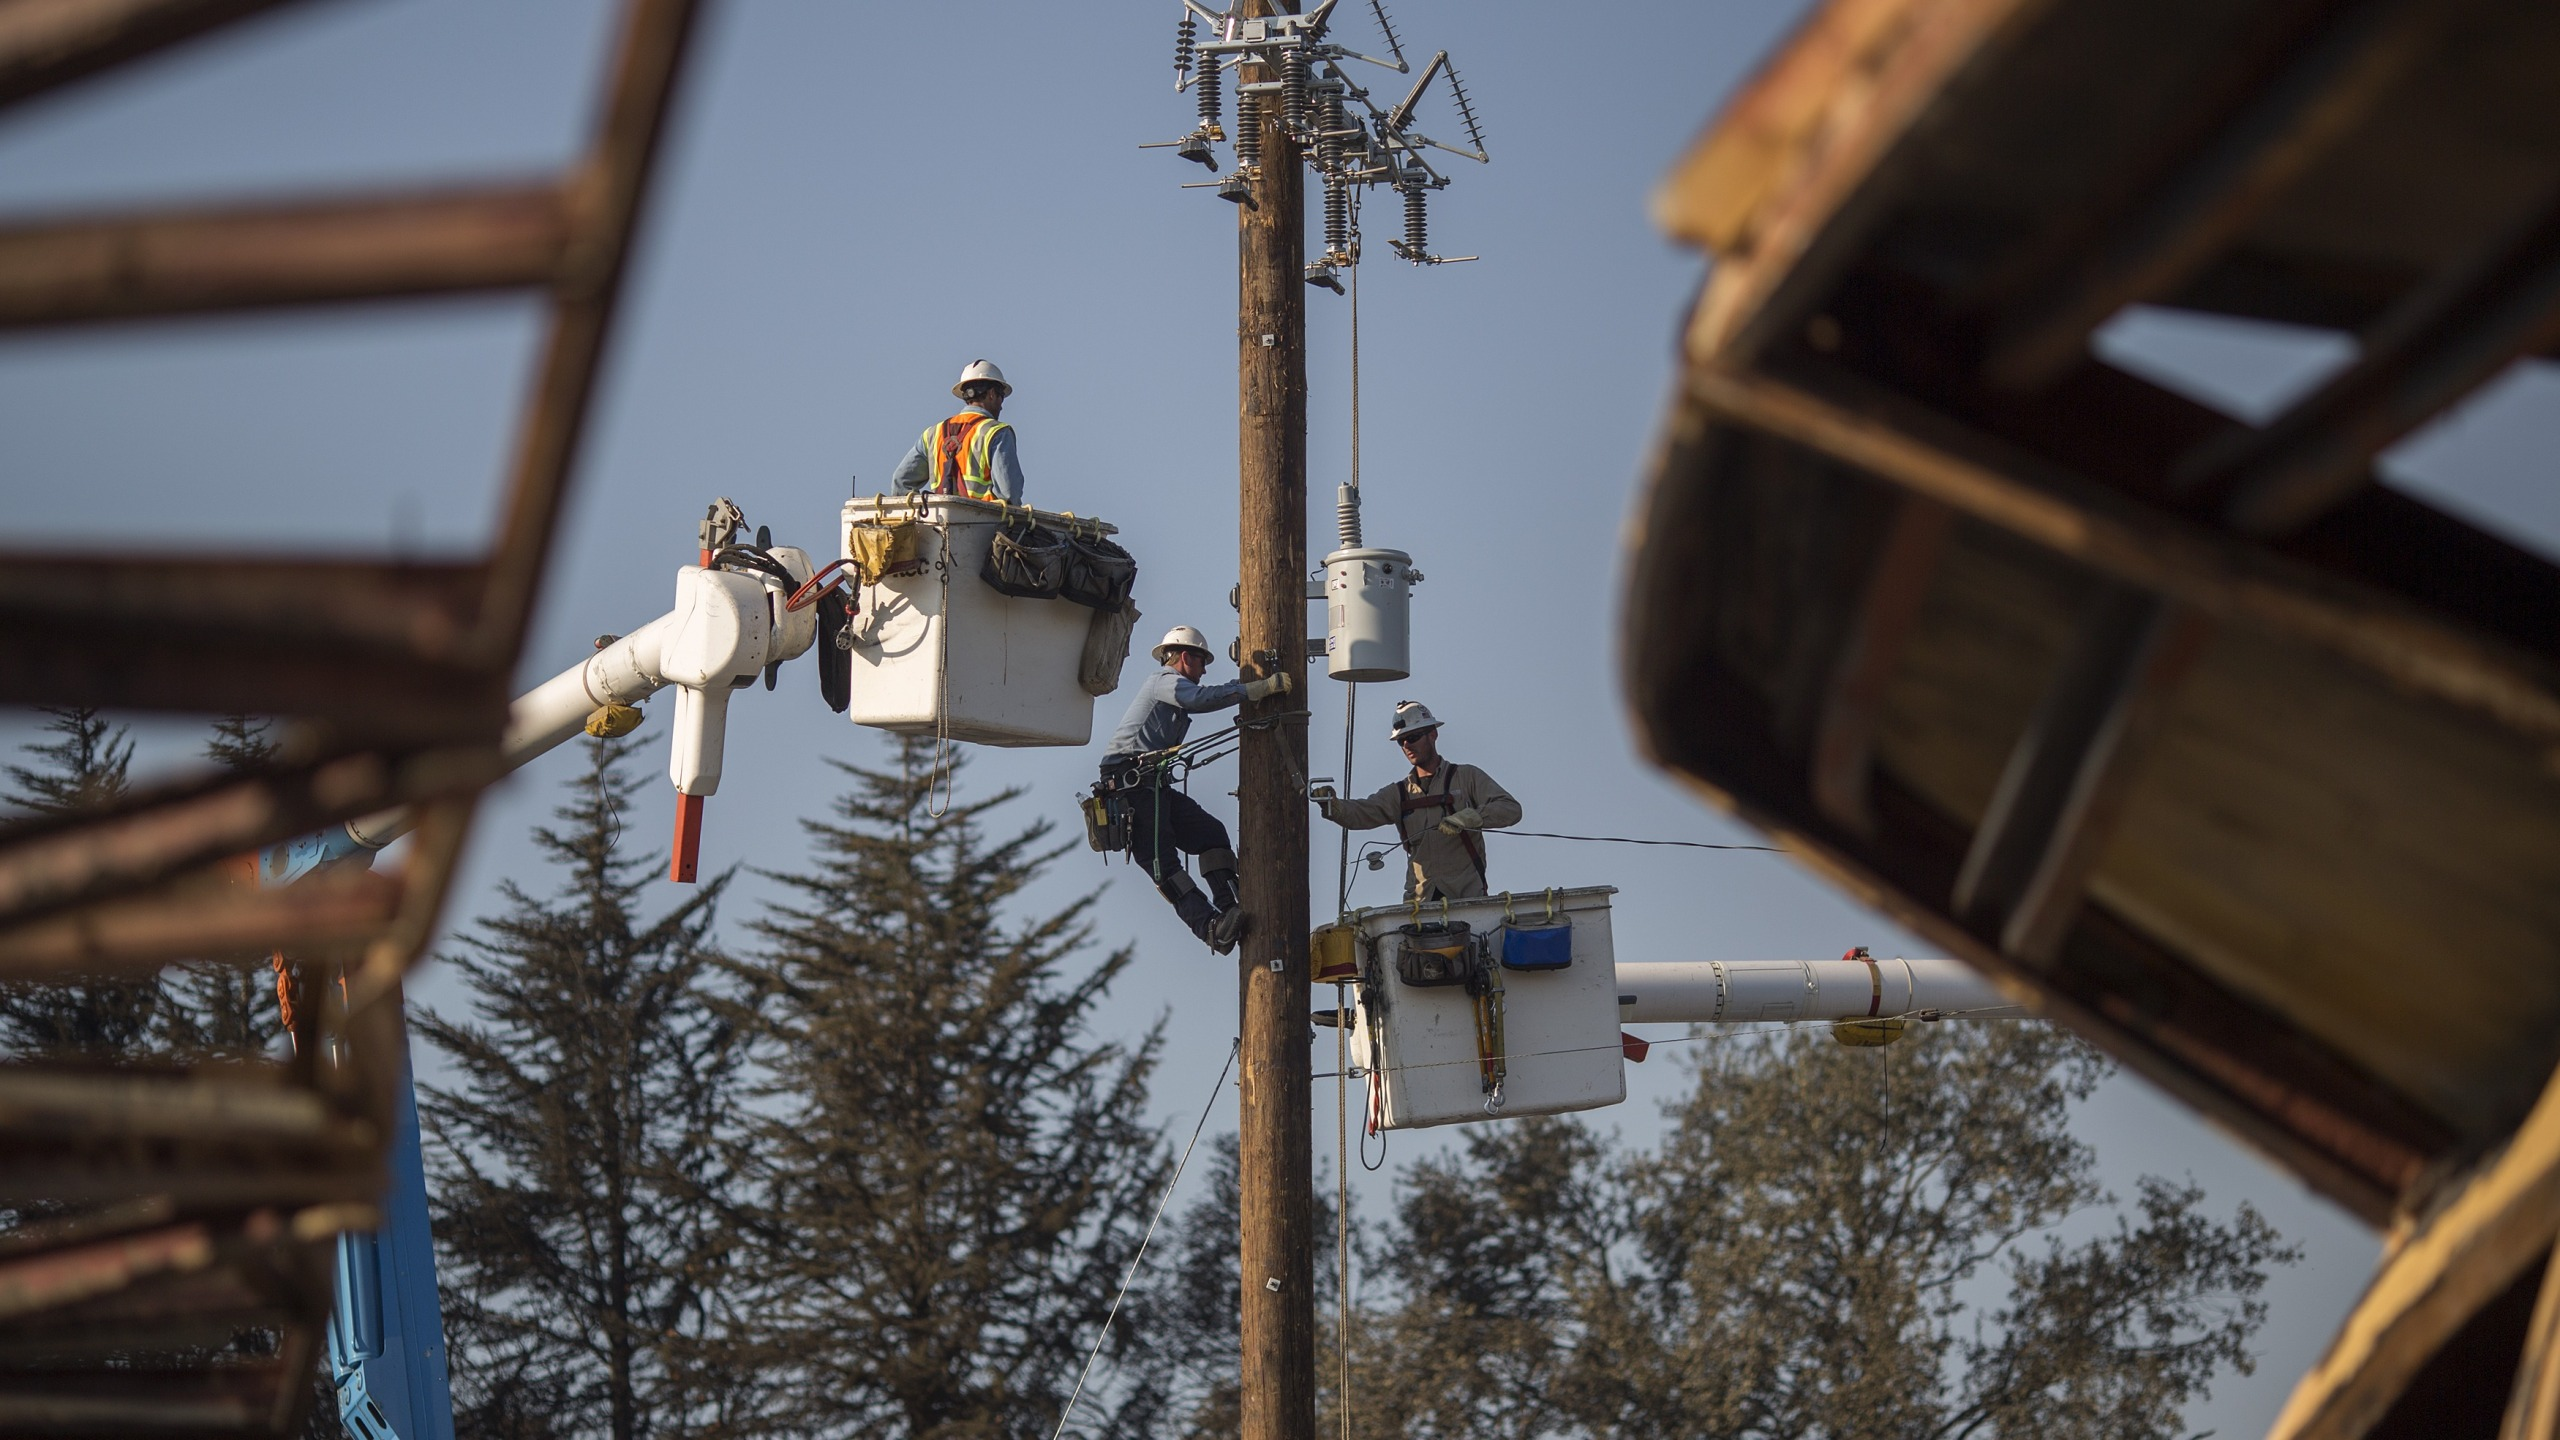 Pacific Gas & Electric Co. crews work to restore power near fire-damaged Cardinal Newman High School in Santa Rosa on Oct. 14, 2017. (Credit: David McNew / Getty Images)